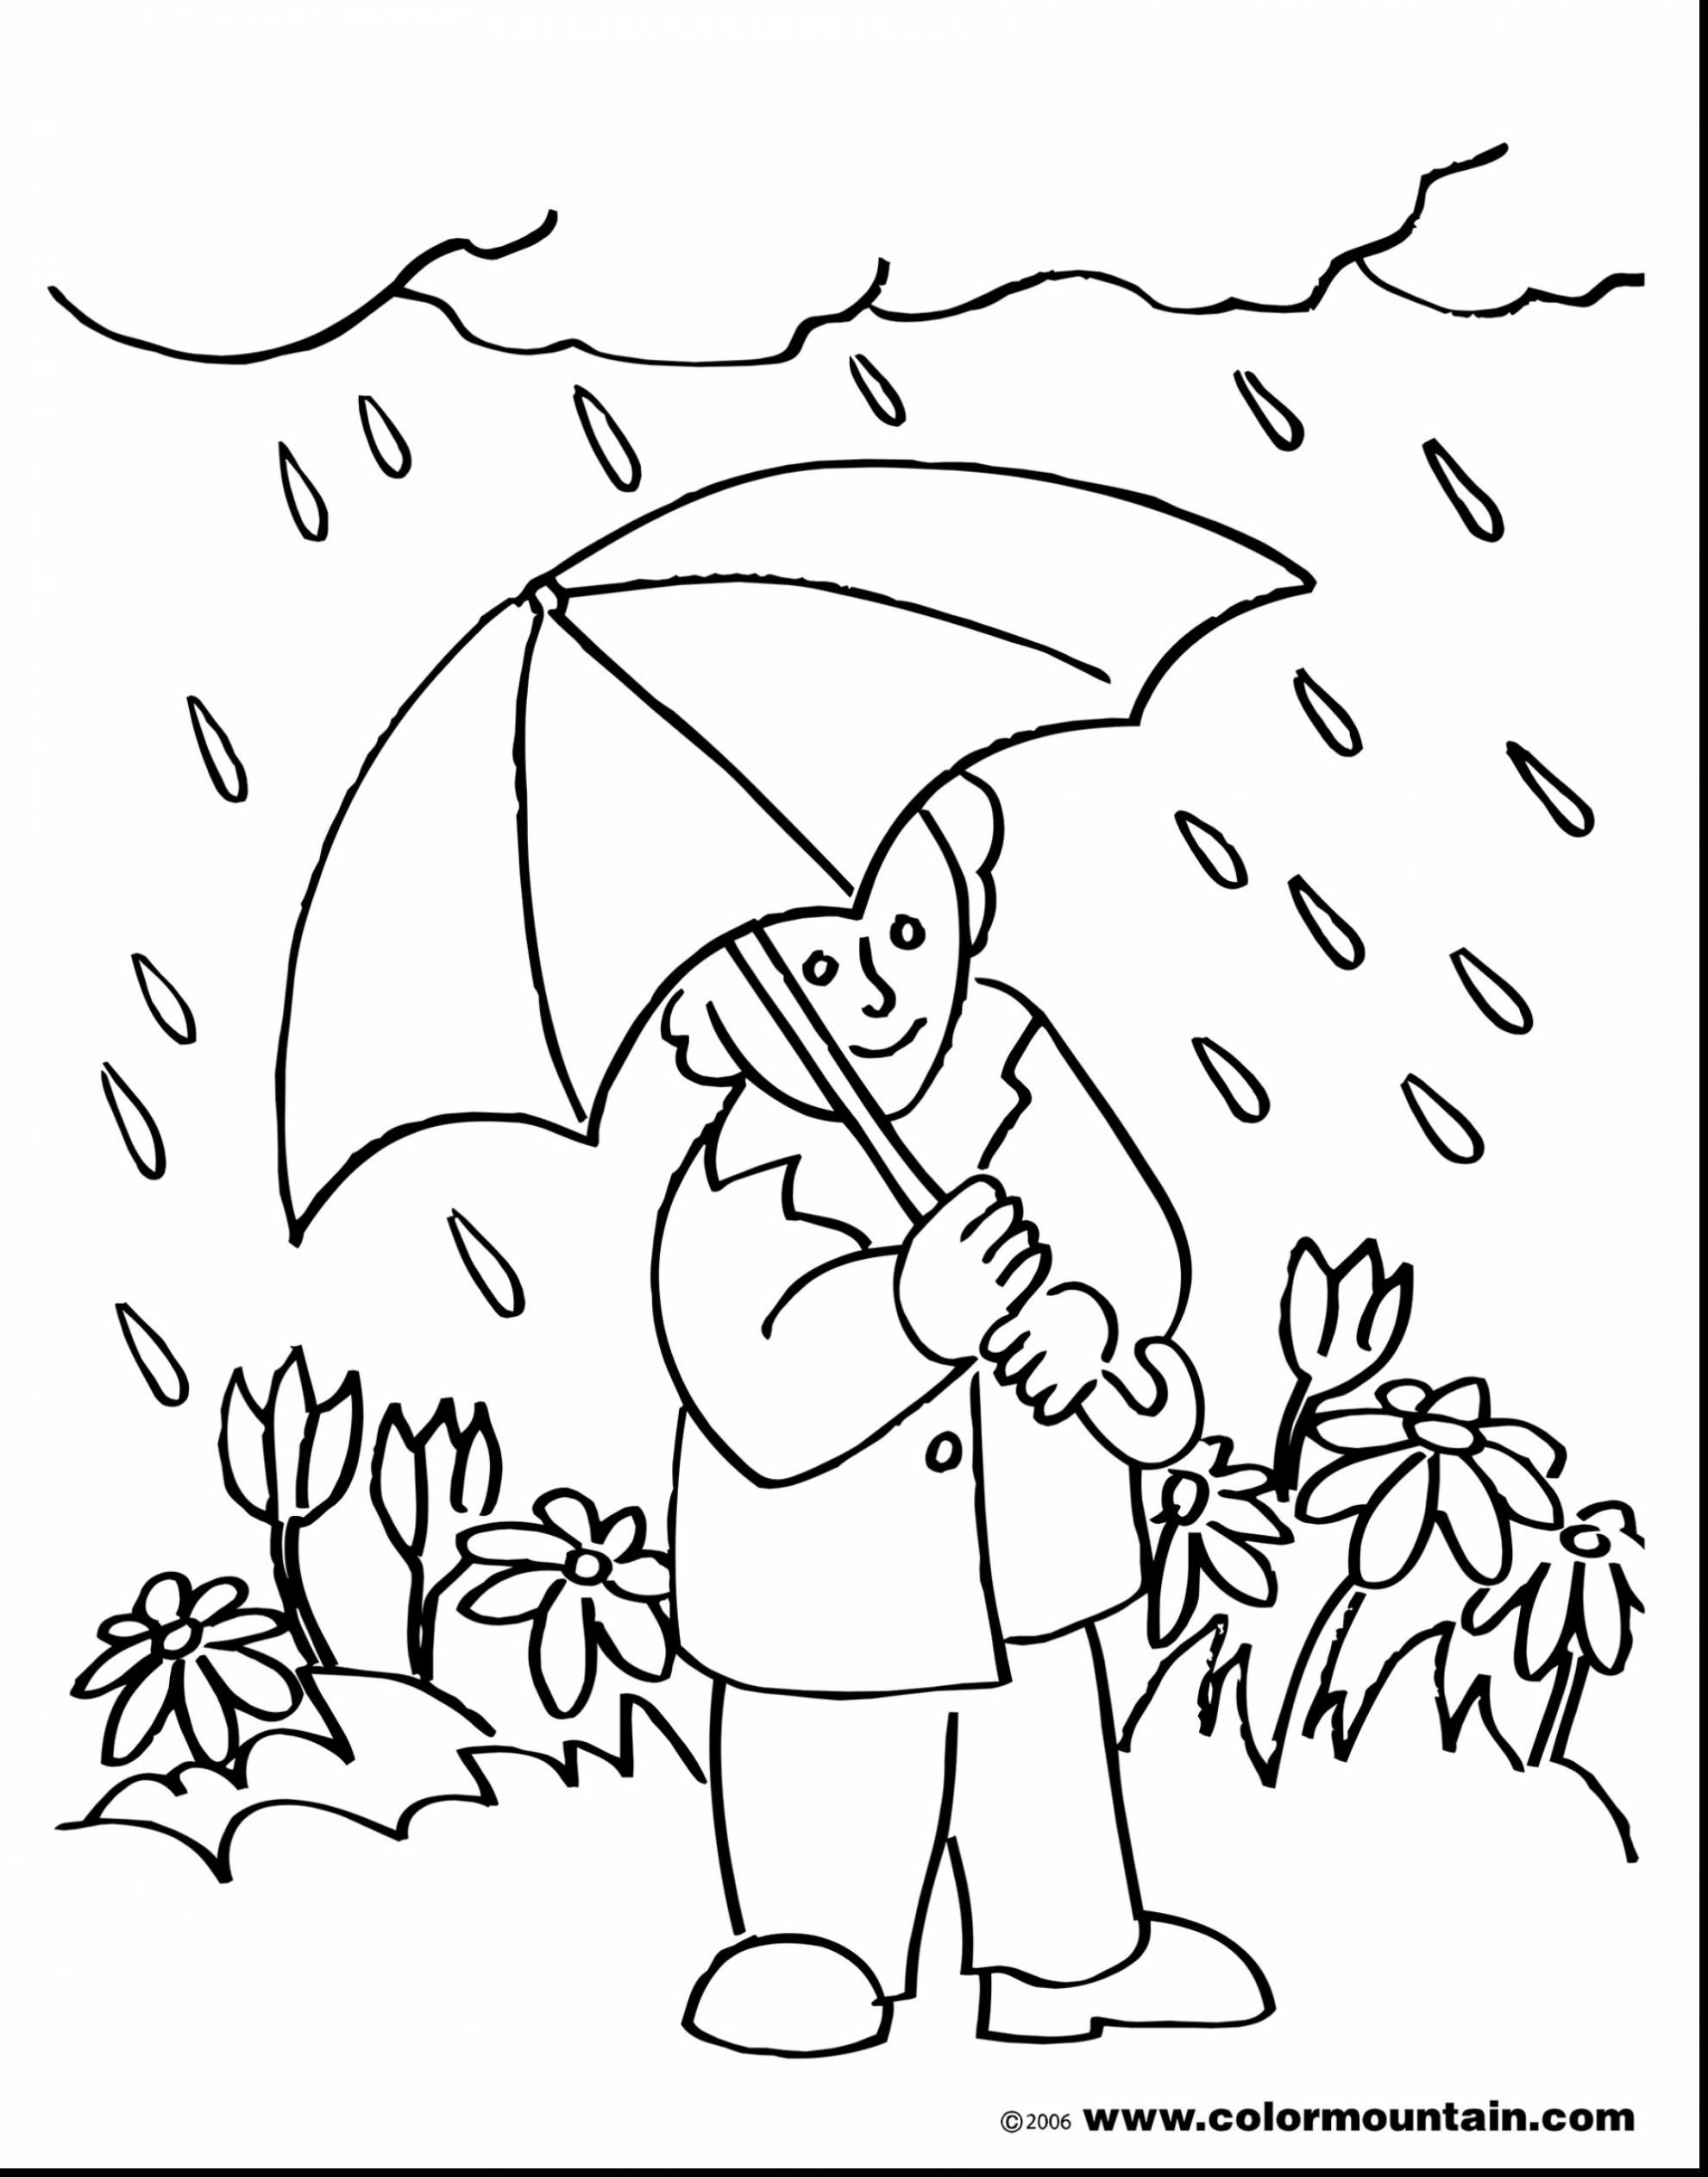 Rainy weather clipart black and white clipground for Rainy day coloring pages